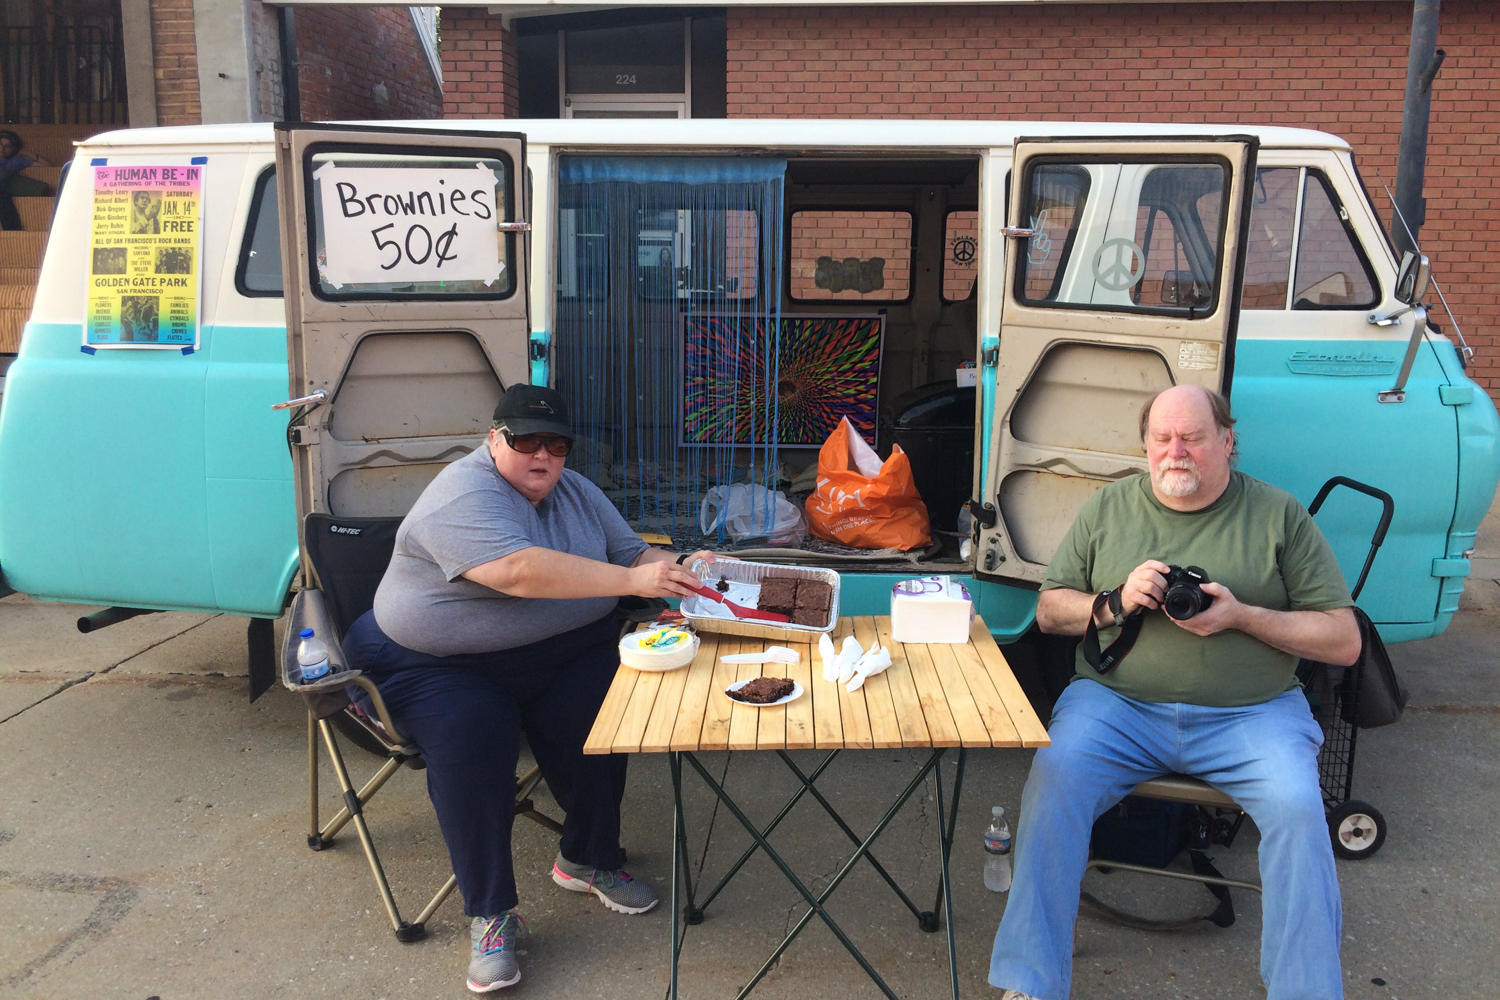 """Utilizing a """"hippie van"""" owned by Lyons resident Bill Hedges, community members hosted a bake sale of brownies. By the end of the night, they were sold out."""